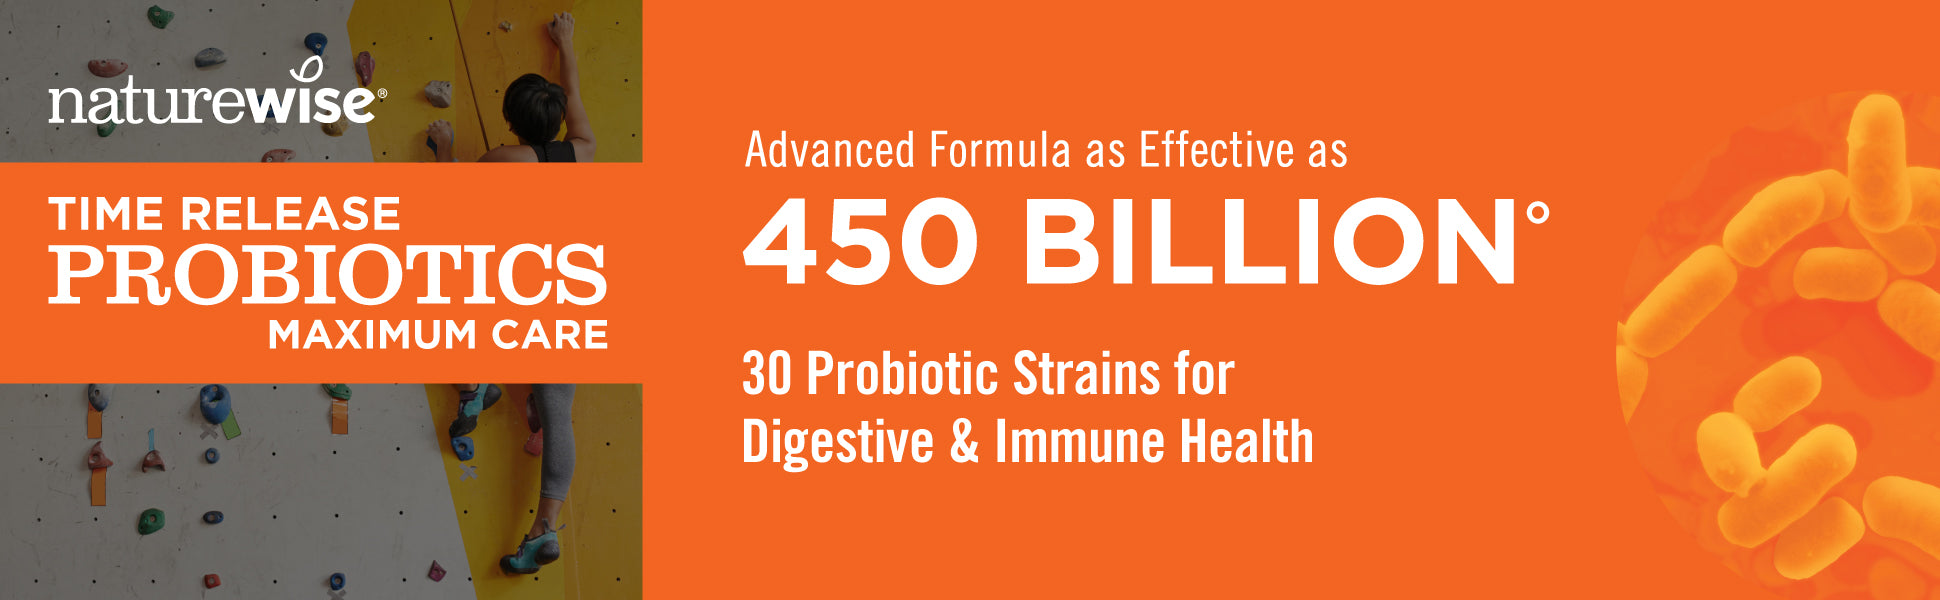 Advanced Formula as Effective as 450 Billion